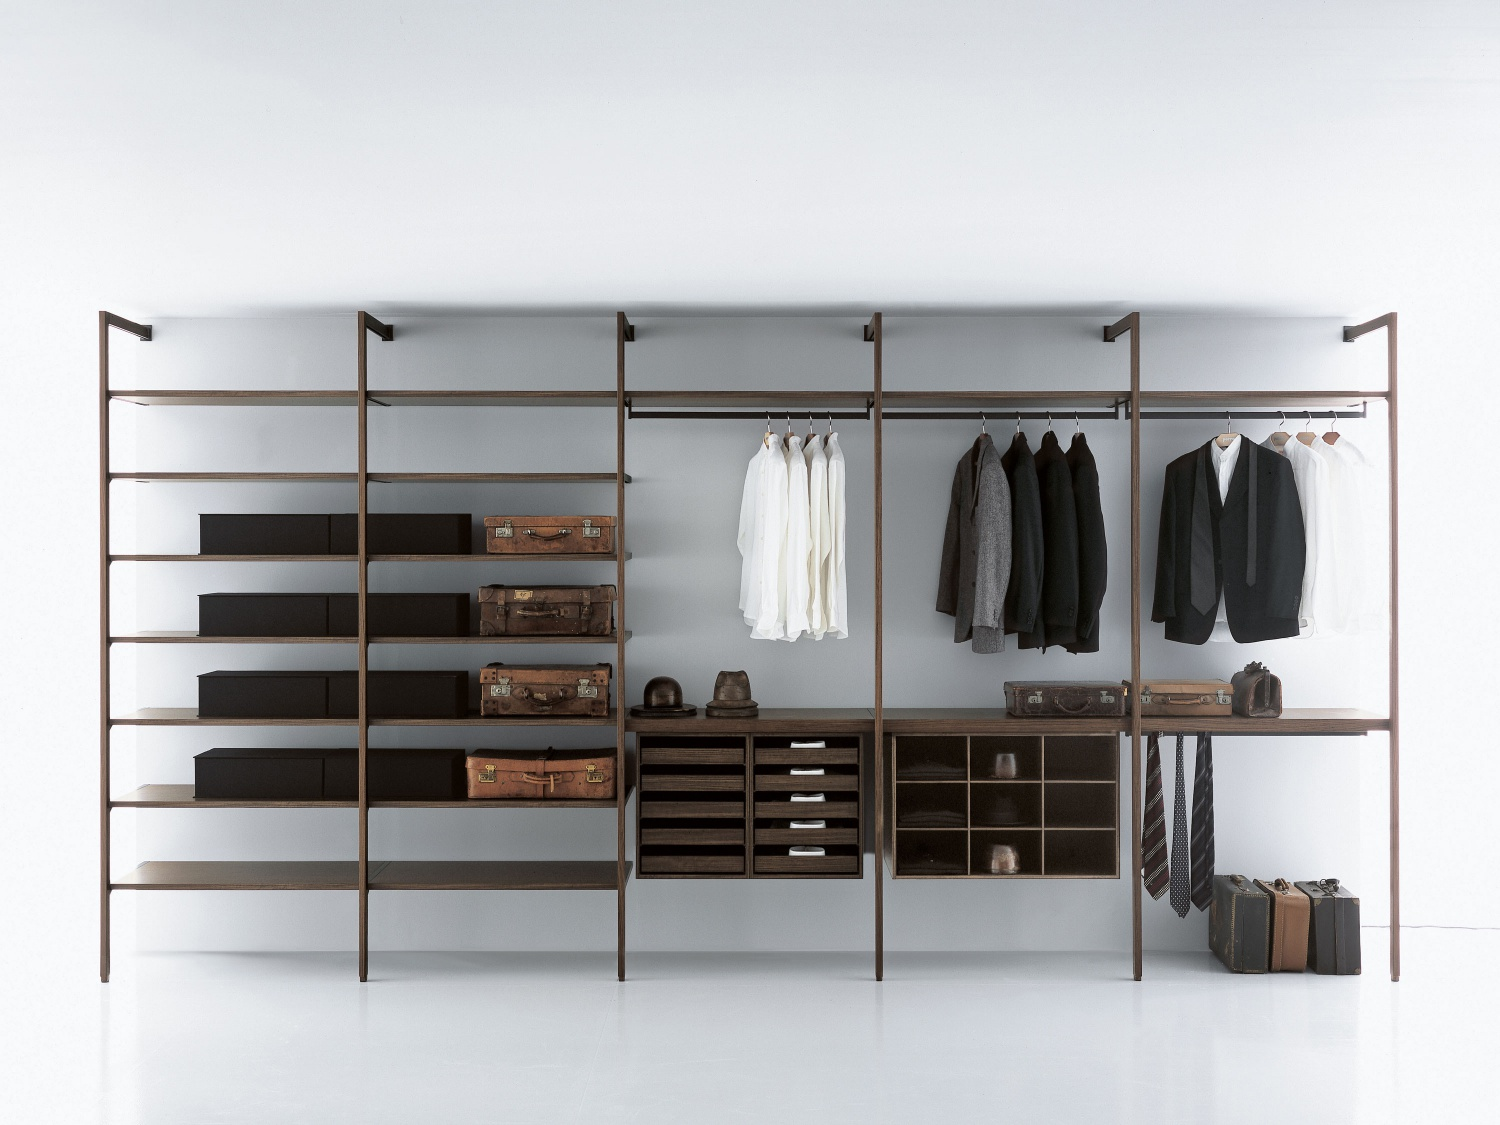 Porro Spa | Products | Systems | Cabina armadio / Walk-in closet